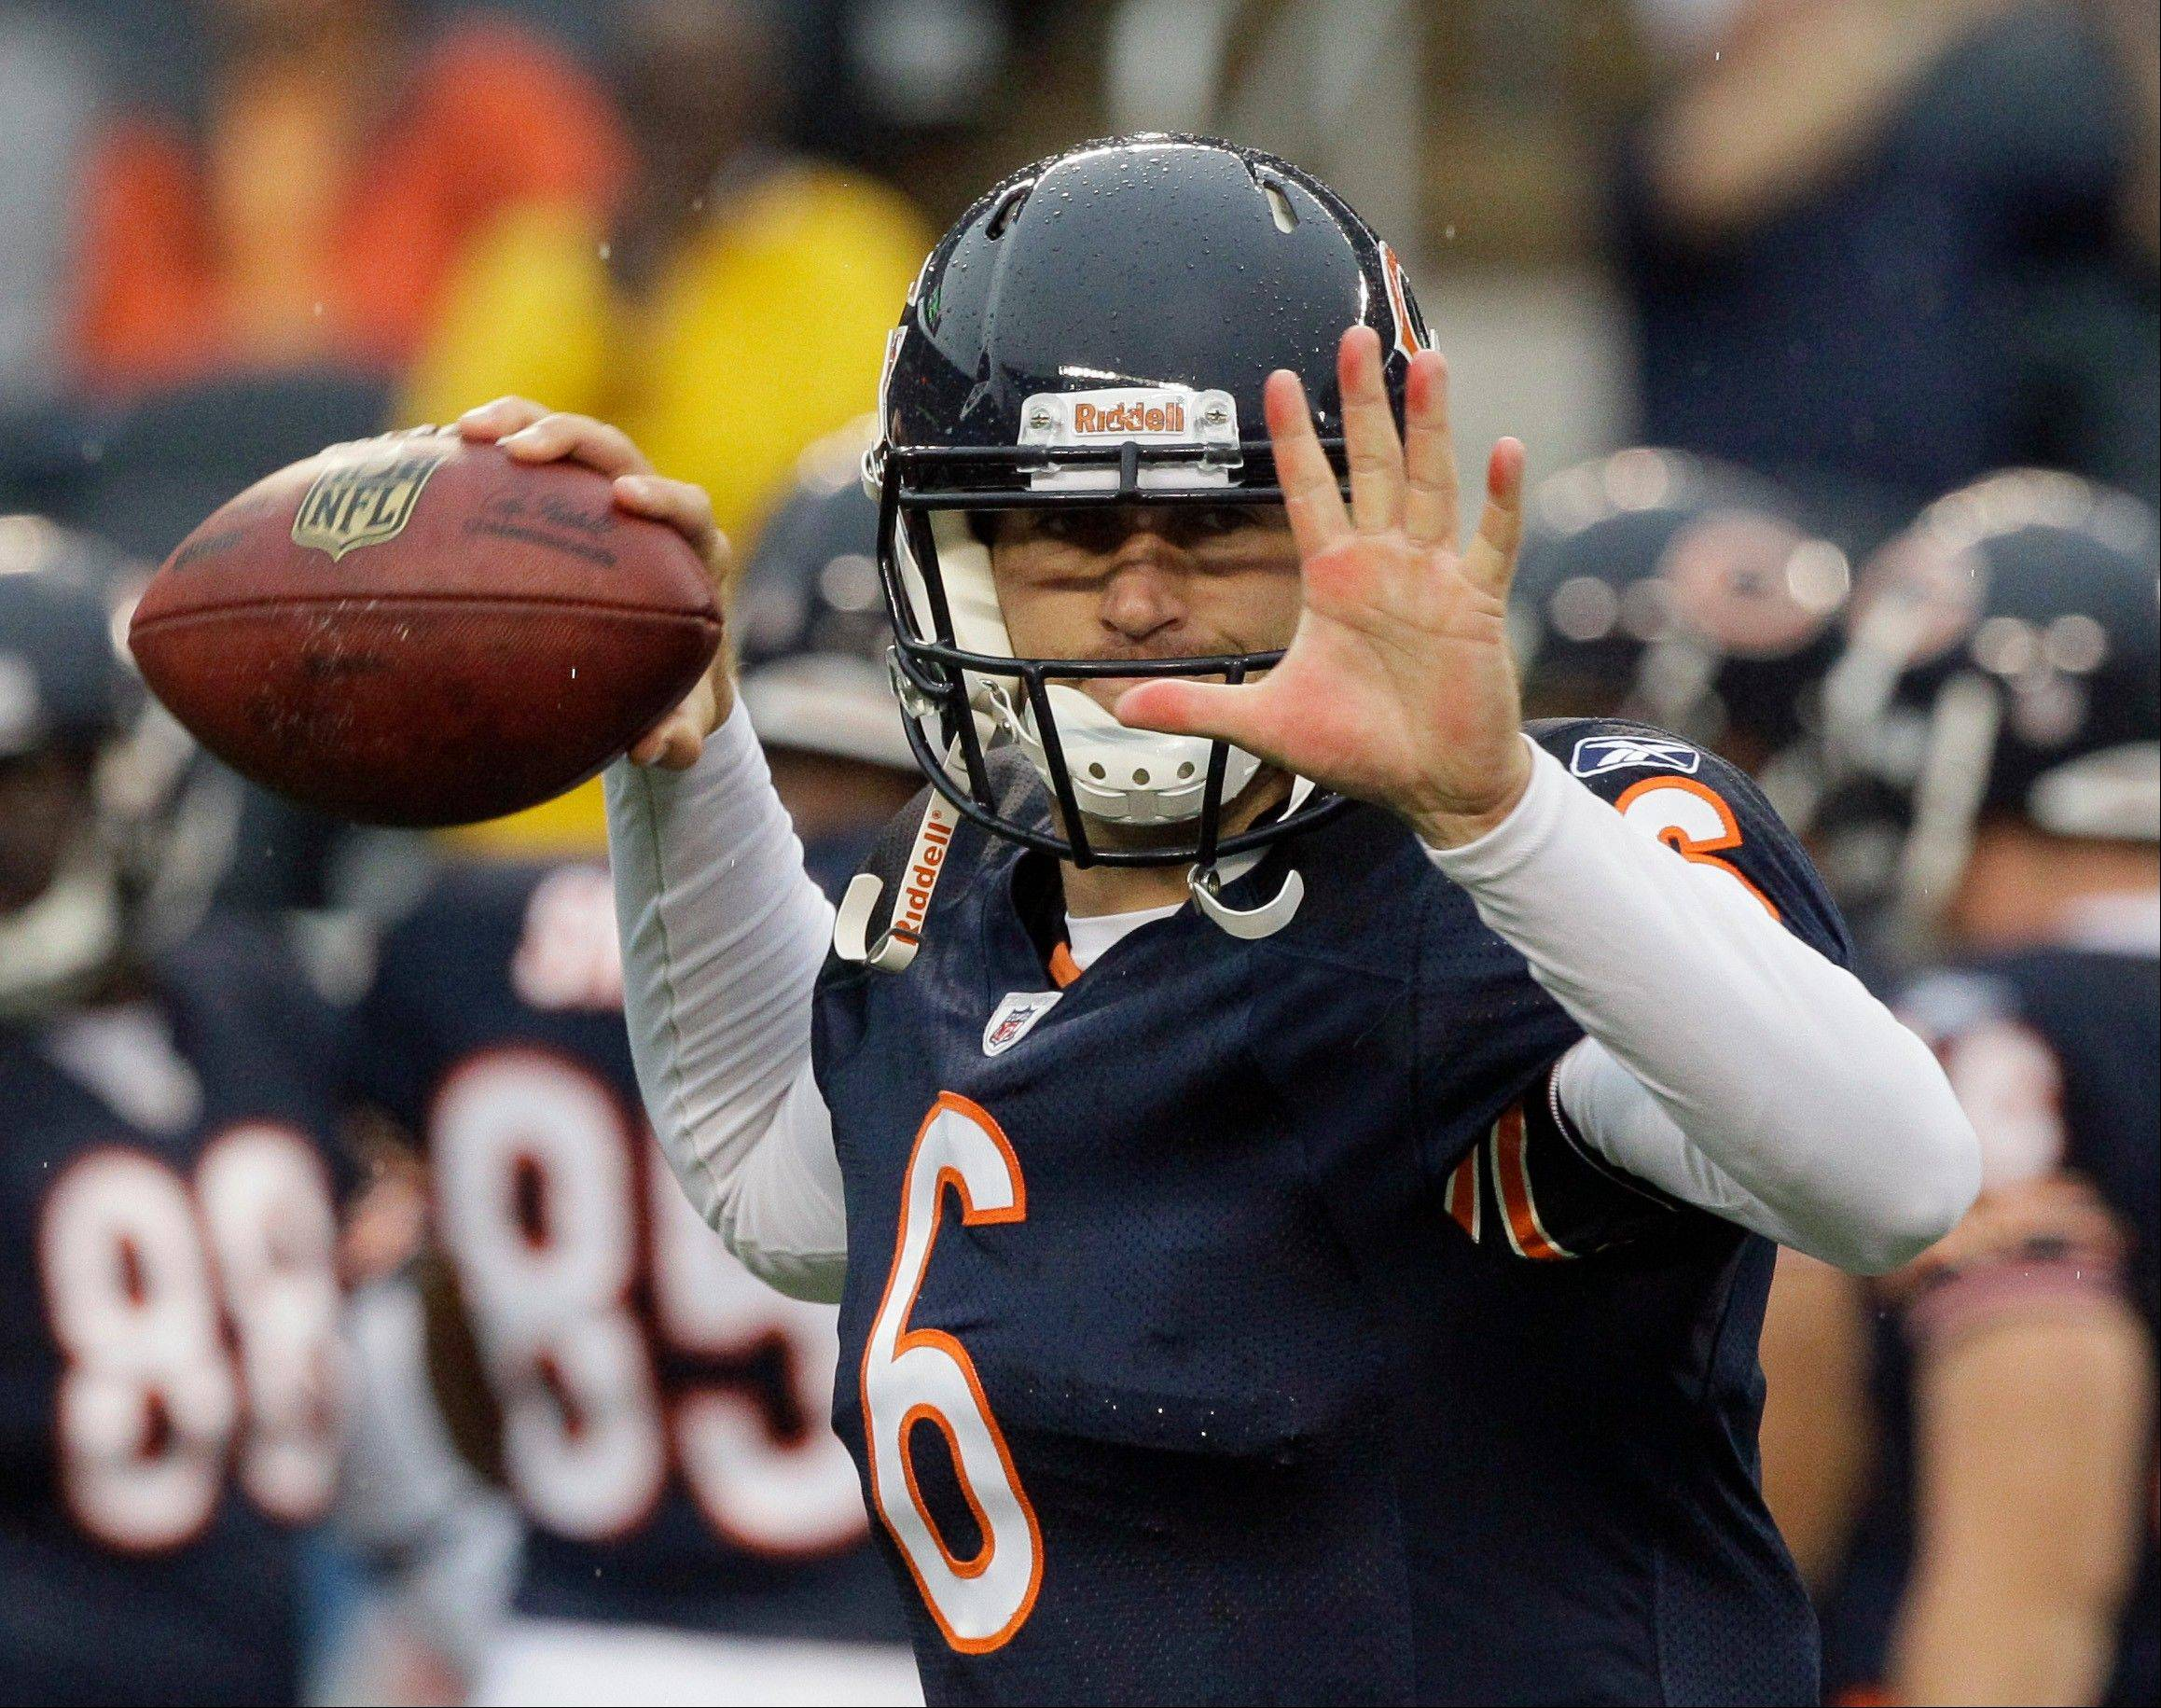 Quarterback Jay Cutler was hit early and often, but powered by a strong defense, the Bears held on for a 10-3 victory over the Buffalo Bills Saturday at Soldier Field.